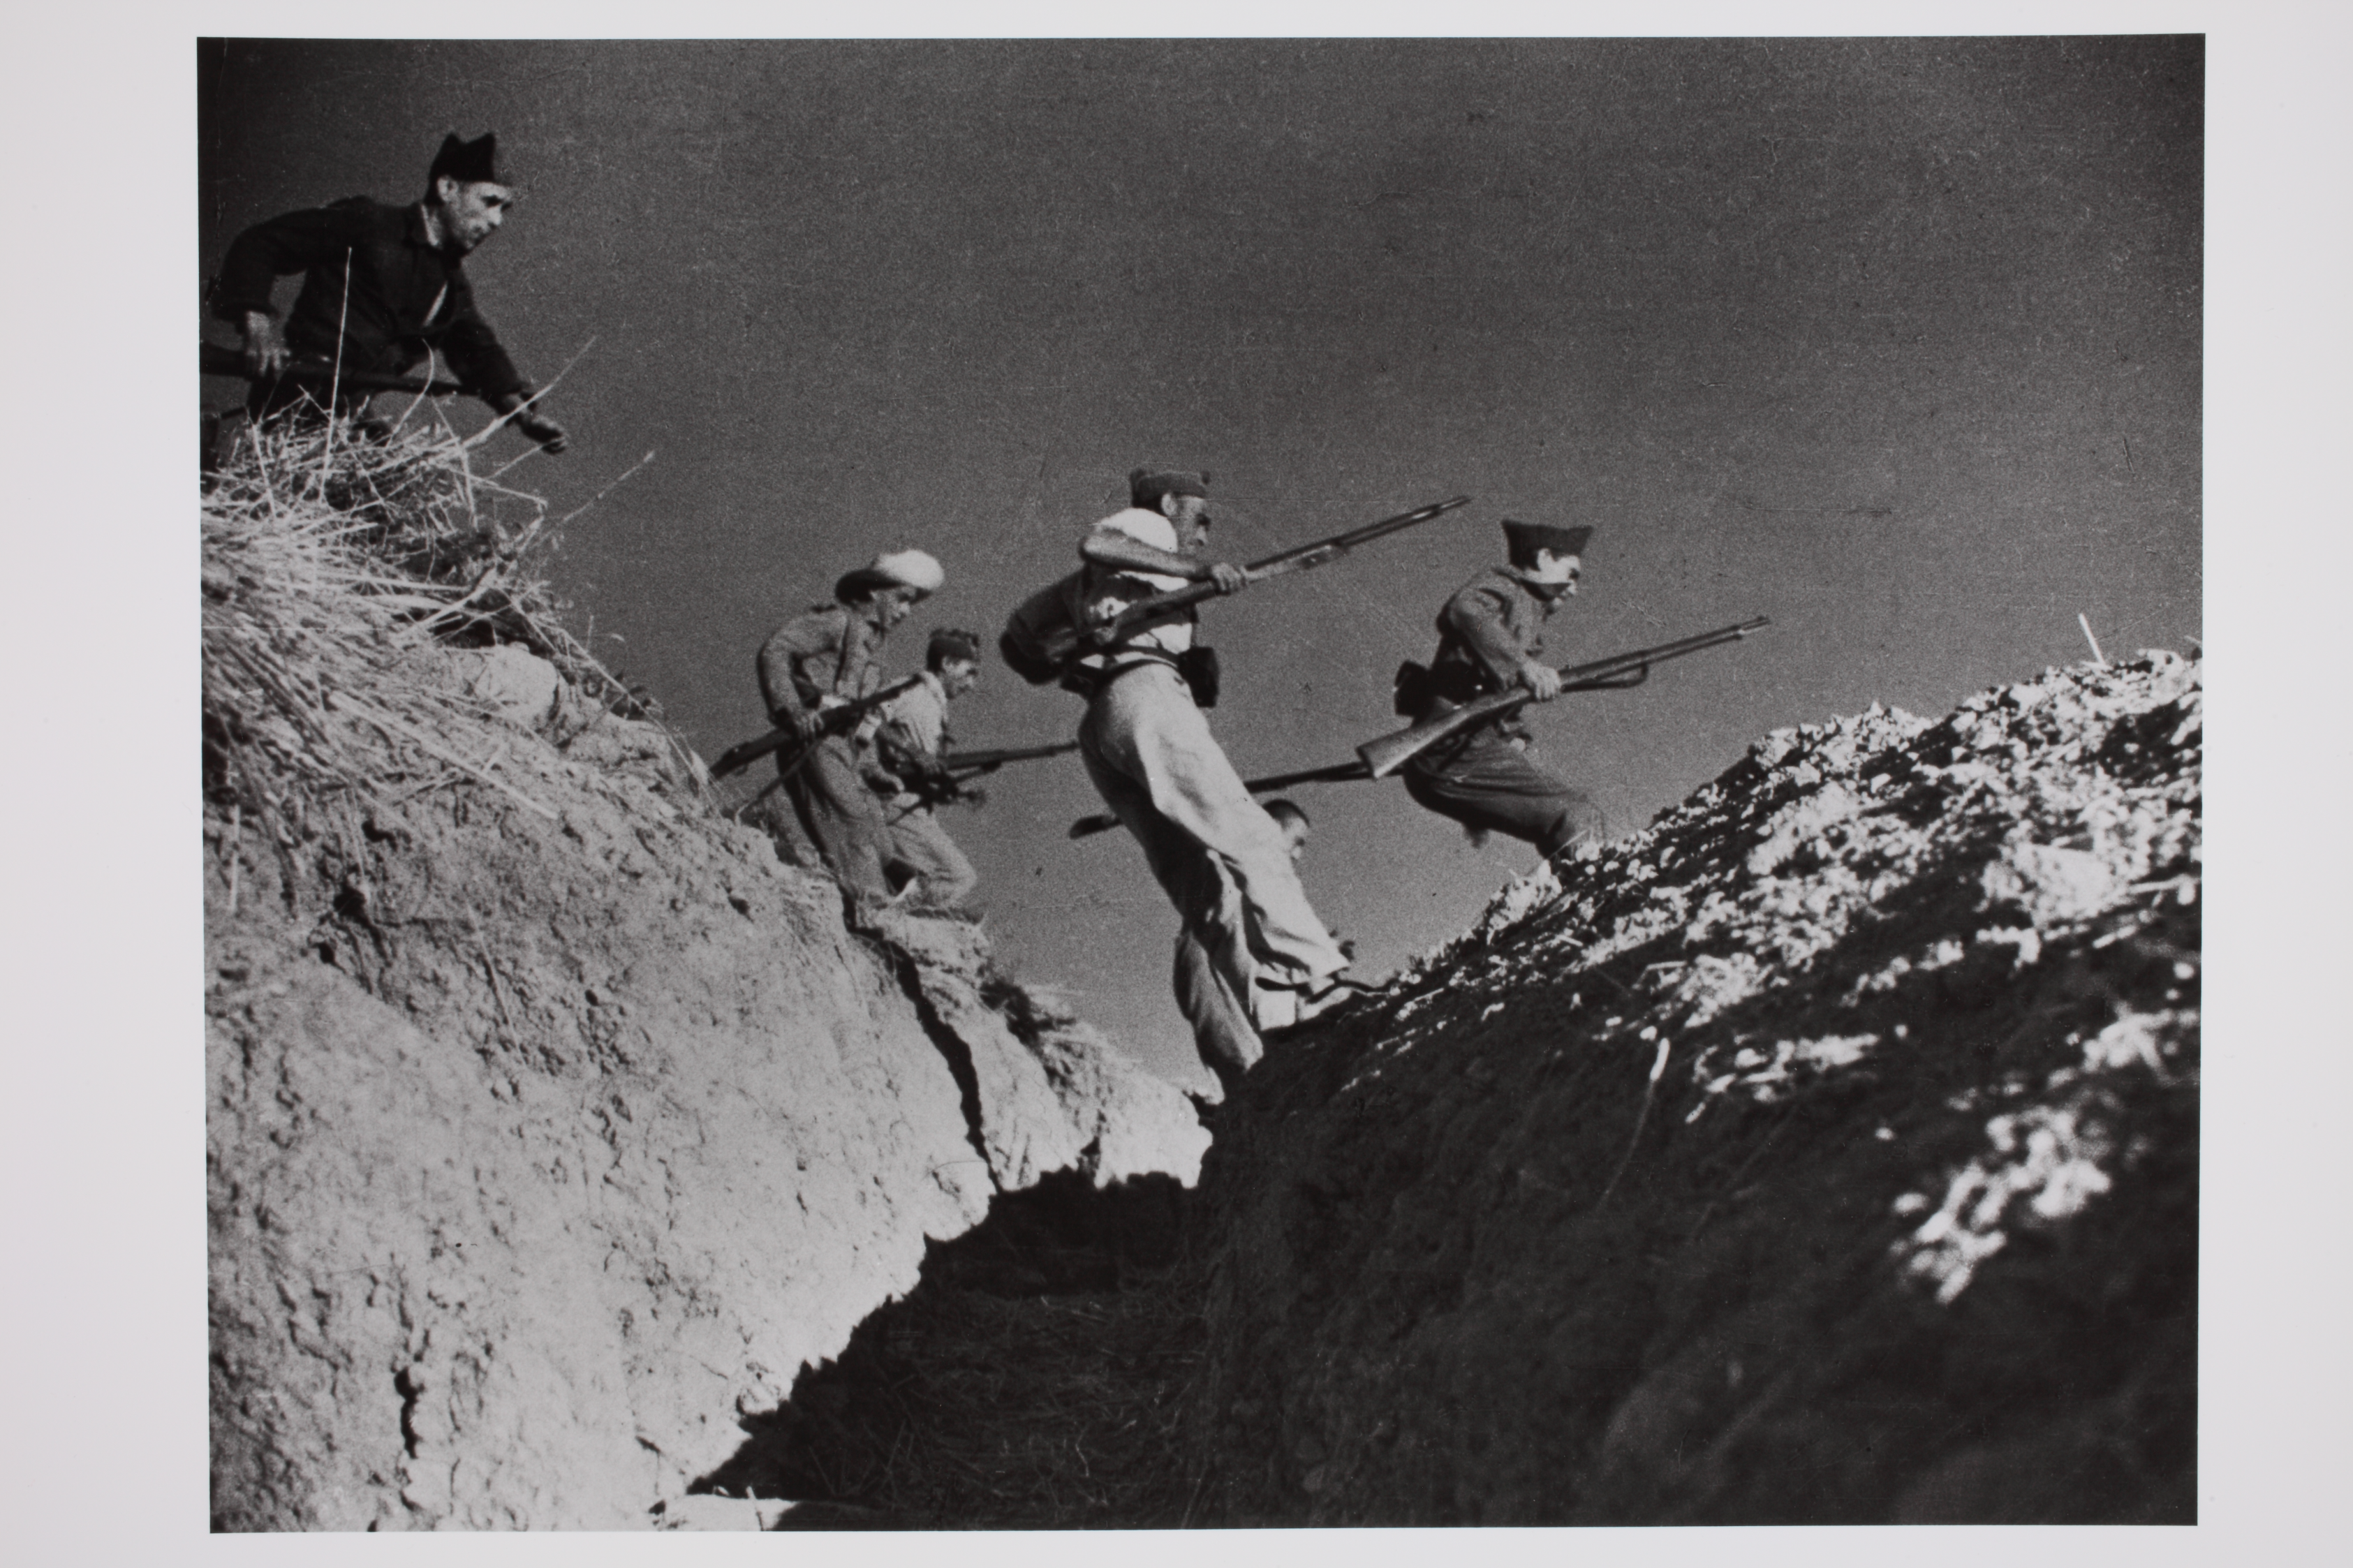 Loyalist militiamen jumping over a gully, Córdoba front, Spain © Robert Capa © International Center of Photography/Magnum Photos